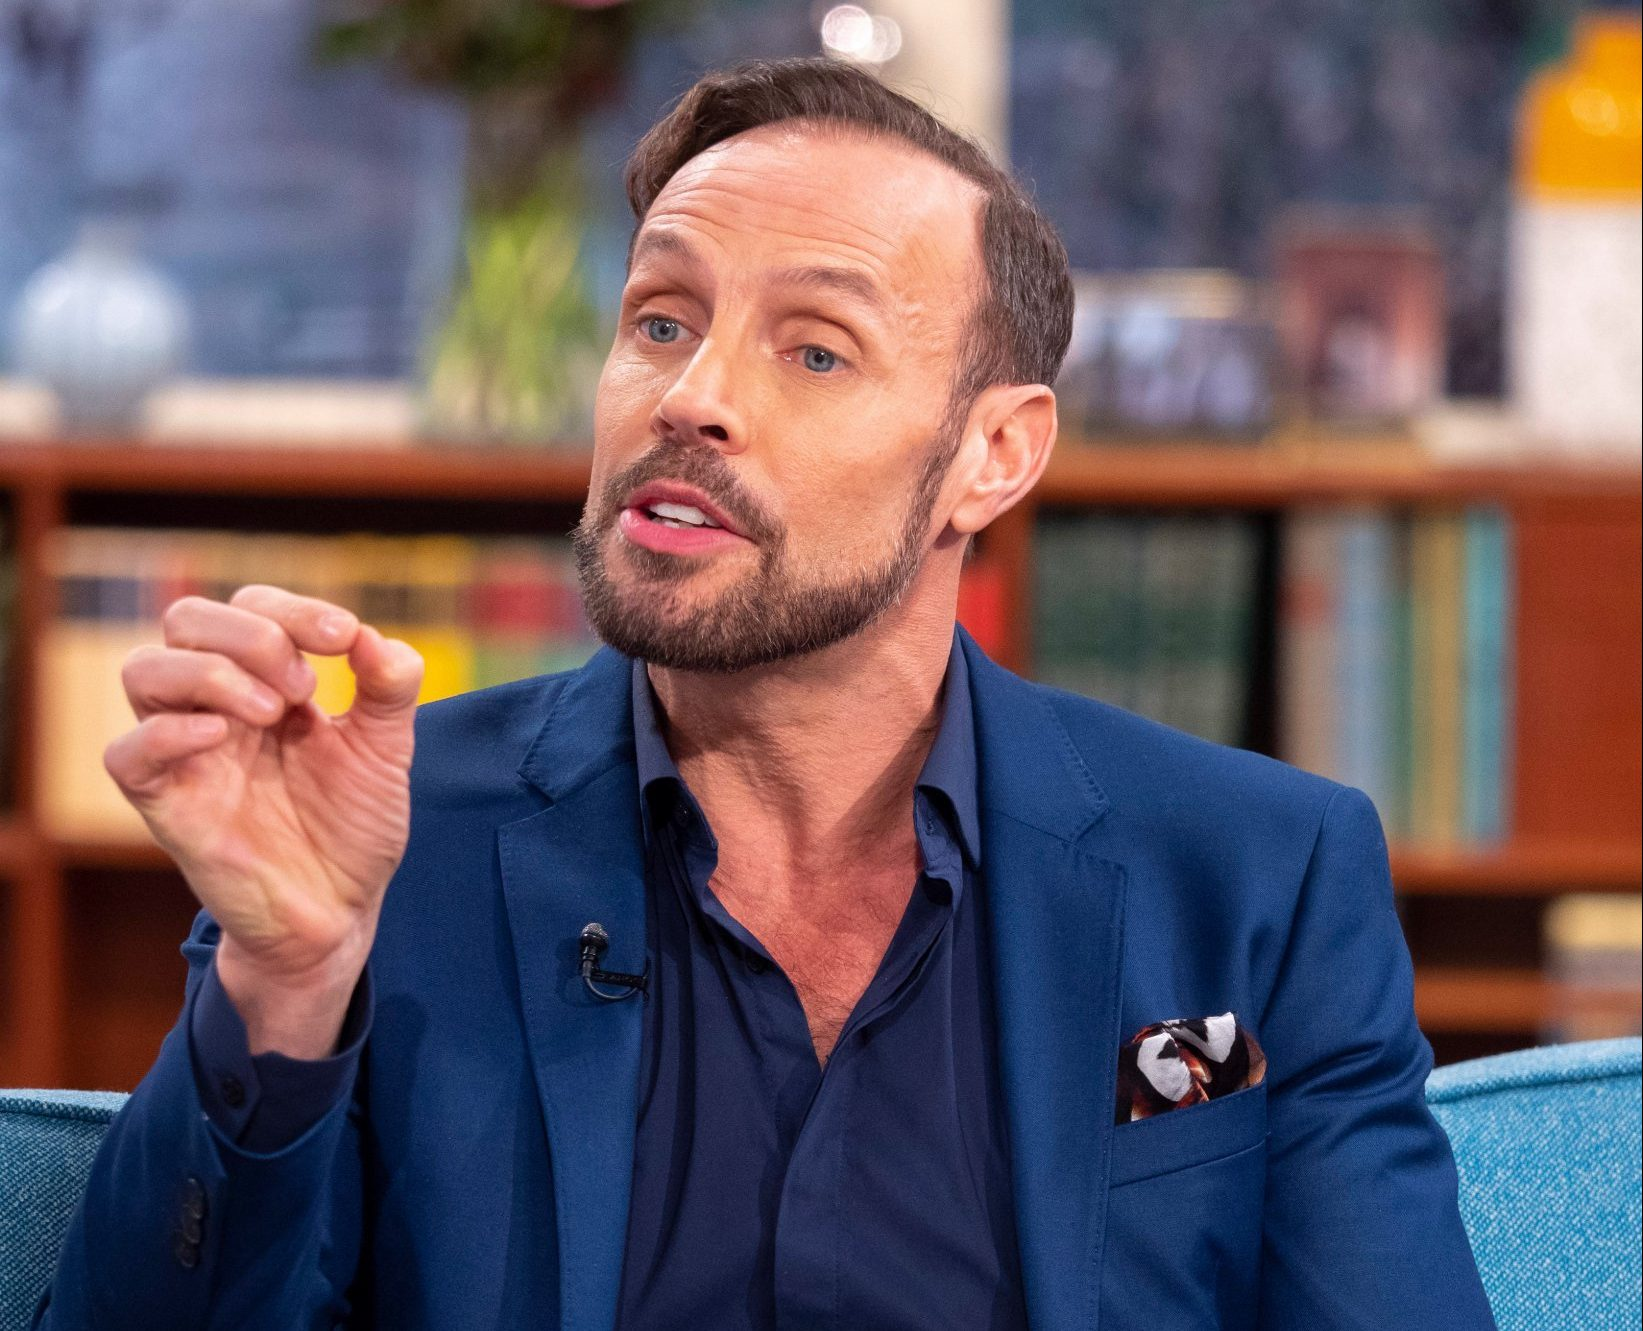 Editorial use only Mandatory Credit: Photo by Ken McKay/ITV/REX (10054248du) Jason Gardiner 'This Morning' TV show, London, UK - 11 Jan 2019 DANCING ON ICE JUDGE JASON GARDINER ?Dancing On Ice? returned for it?s eleventh series last weekend - and judge, Jason Gardiner wasted no time in launching straight back into his usual tough criticism. But has the show?s resident Mr Nasty already gone too far with his frosty critique? As fans call for him to apologise to this year?s contestant Didi Conn - Jason Gardiner joins us with his take on the drama.